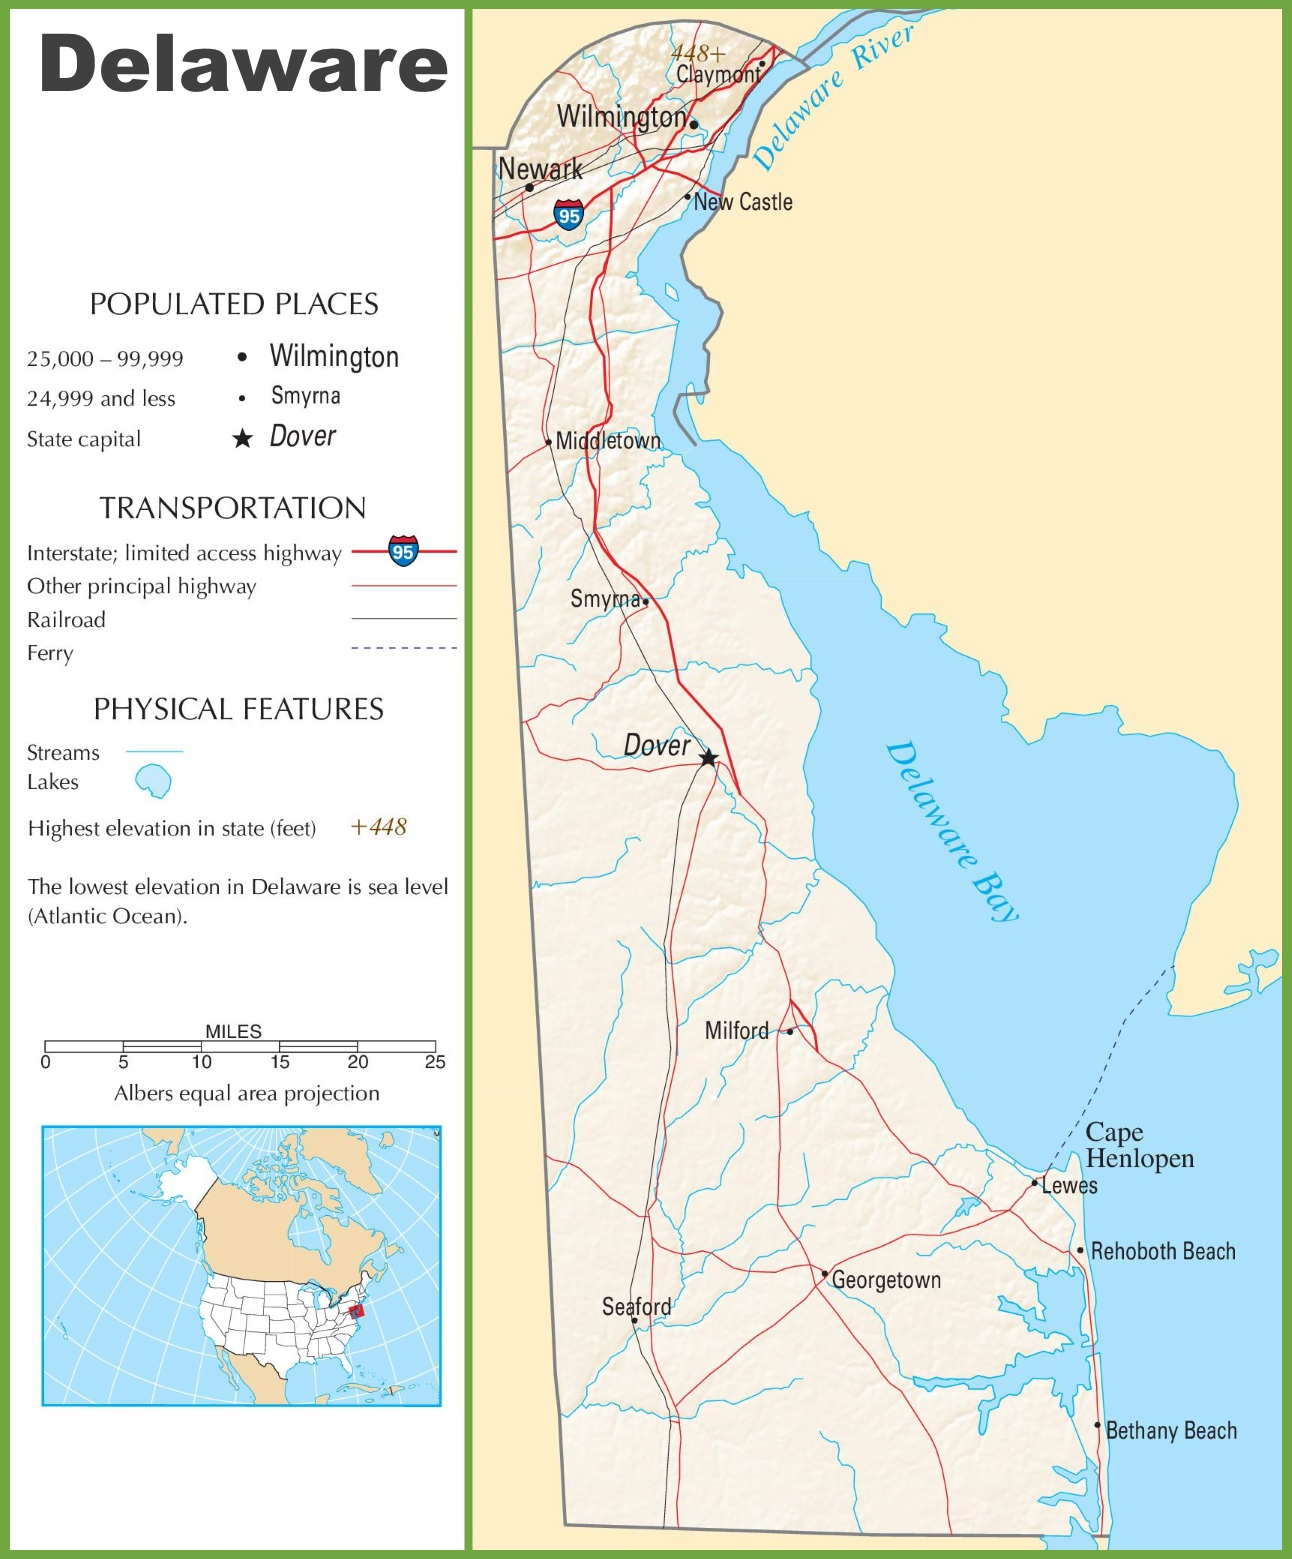 Delaware highway map on